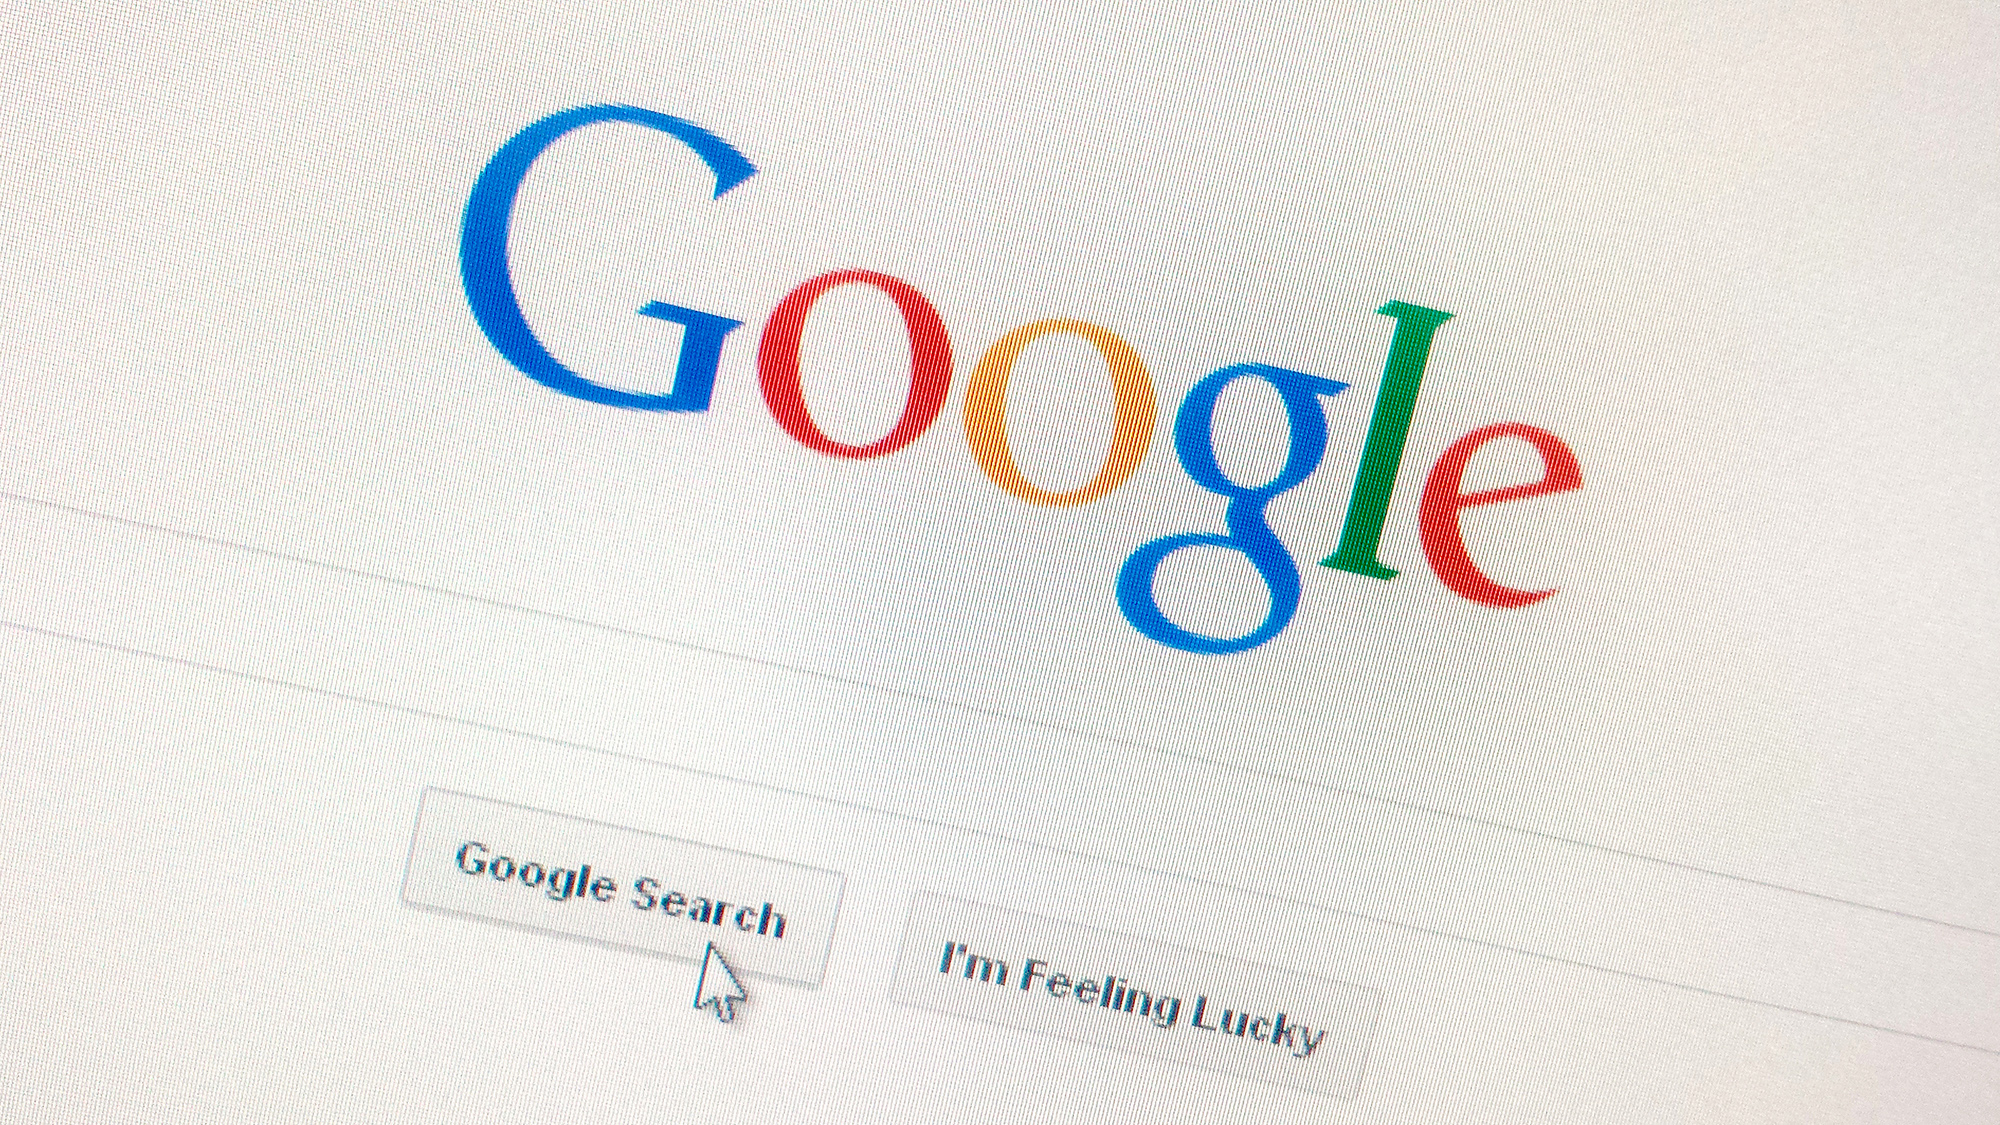 Google shouldn't subsidise journalism but the government could